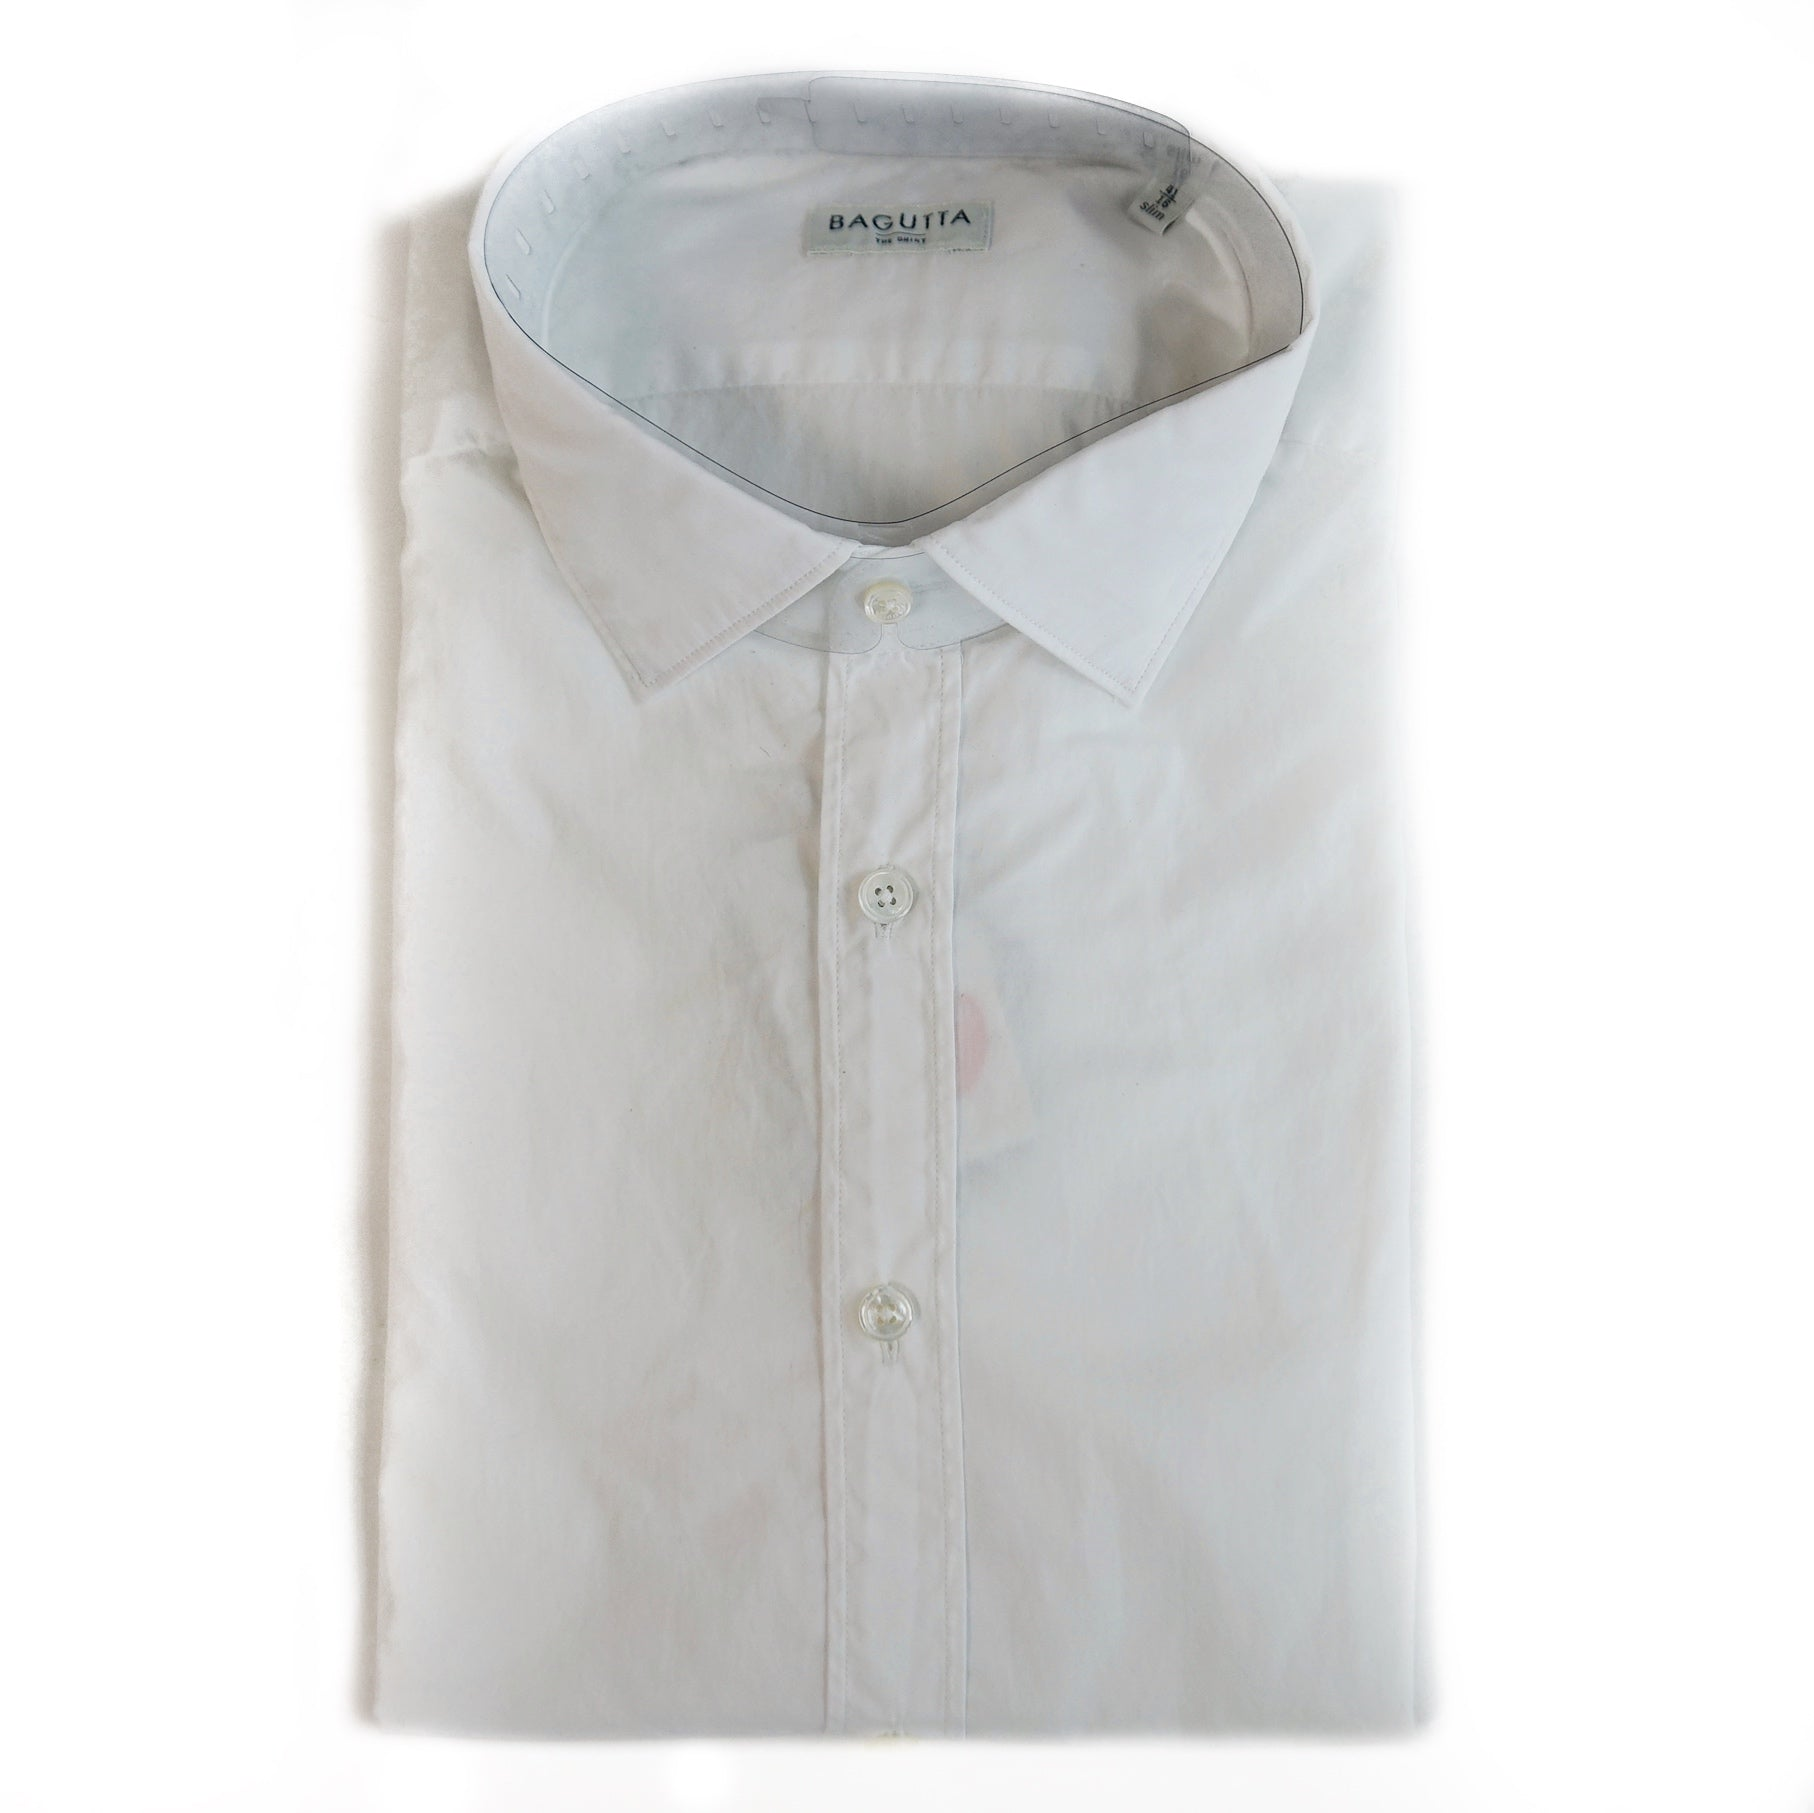 Bagutta / Berlino White Broad Cloth Dress Shirt